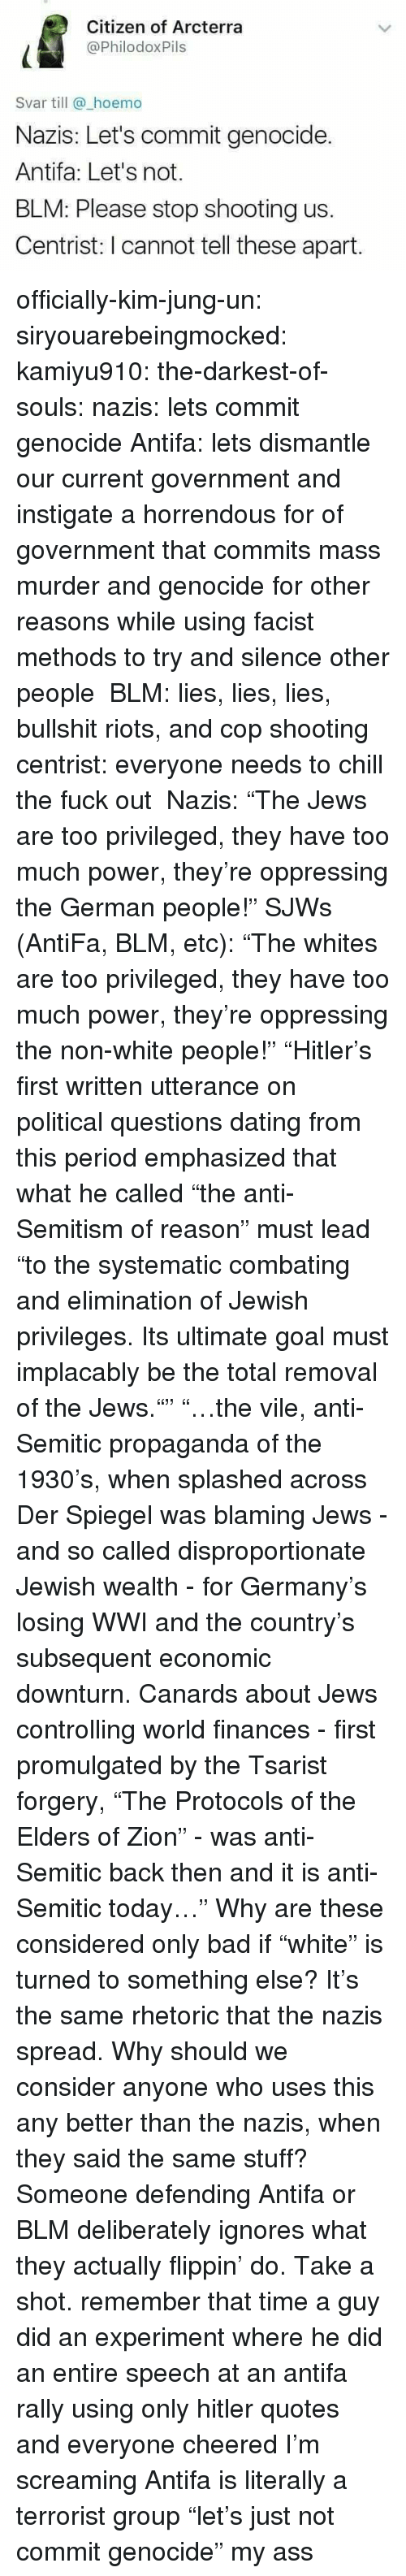 """Blm: Citizen of Arcterra  @PhilodoxPils  Svar till @_hoemo  Nazis: Let's commit genocide.  Antifa: Let's not.  BLM: Please stop shooting us.  Centrist: I cannot tell these apart officially-kim-jung-un:  siryouarebeingmocked:  kamiyu910:  the-darkest-of-souls:  nazis: lets commit genocide Antifa: lets dismantle our current government and instigate a horrendous for of government that commits mass murder and genocide for other reasons while using facist methods to try and silence other people BLM: lies, lies, lies, bullshit riots, and cop shooting centrist: everyone needs to chill the fuck out  Nazis:""""The Jews are too privileged, they have too much power, they're oppressing the German people!"""" SJWs (AntiFa, BLM, etc):""""The whites are too privileged, they have too much power, they're oppressing the non-white people!""""   """"Hitler's first written utterance on political questions dating from this period emphasized that what he called """"the anti-Semitism of reason"""" must lead """"to the systematic combating and elimination of Jewish privileges. Its ultimate goal must implacably be the total removal of the Jews."""""""" """"…the vile, anti-Semitic propaganda of the 1930's, when splashed across Der Spiegel was blaming Jews - and so called disproportionate Jewish wealth - for Germany's losing WWI and the country's subsequent economic downturn. Canards about Jews controlling world finances - first promulgated by the Tsarist forgery, """"The Protocols of the Elders of Zion"""" - was anti-Semitic back then and it is anti-Semitic today…"""" Why are these considered only bad if""""white"""" is turned to something else? It's the same rhetoric that the nazis spread. Why should we consider anyone who uses this any better than the nazis, when they said the same stuff?  Someone defending Antifa or BLM deliberately ignores what they actually flippin' do. Take a shot.  remember that time a guy did an experiment where he did an entire speech at an antifa rally using only hitler quotes and everyone cheered  I'm screaming """